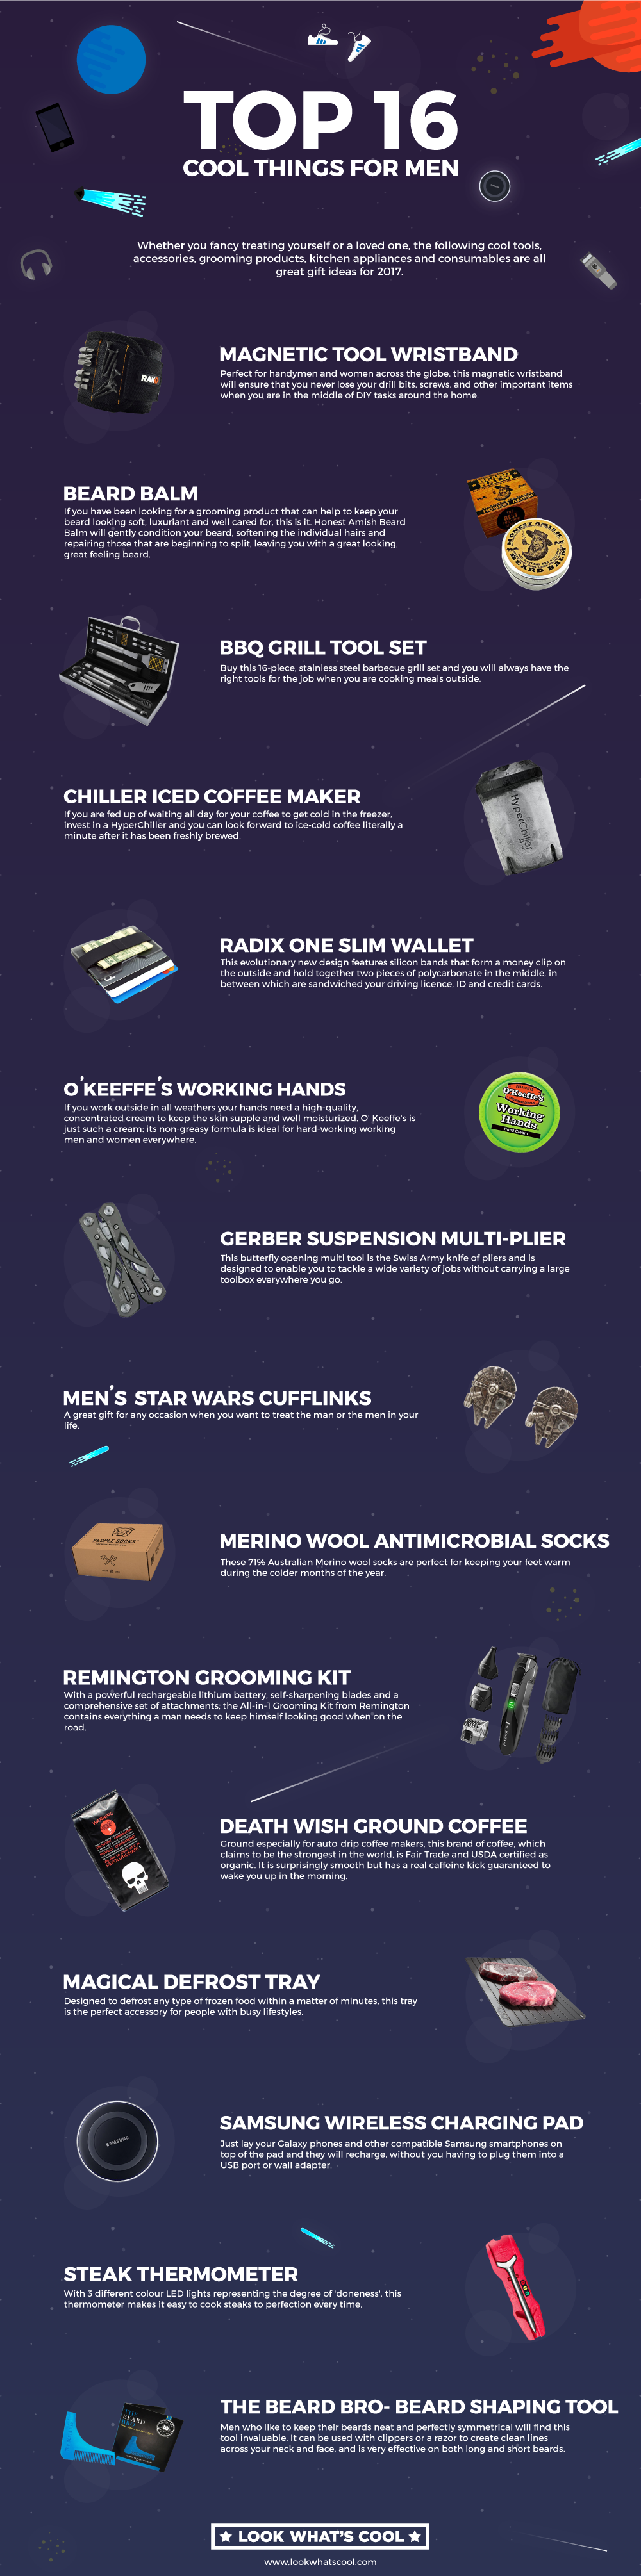 Top 16 Cool Things For Men #Infographic